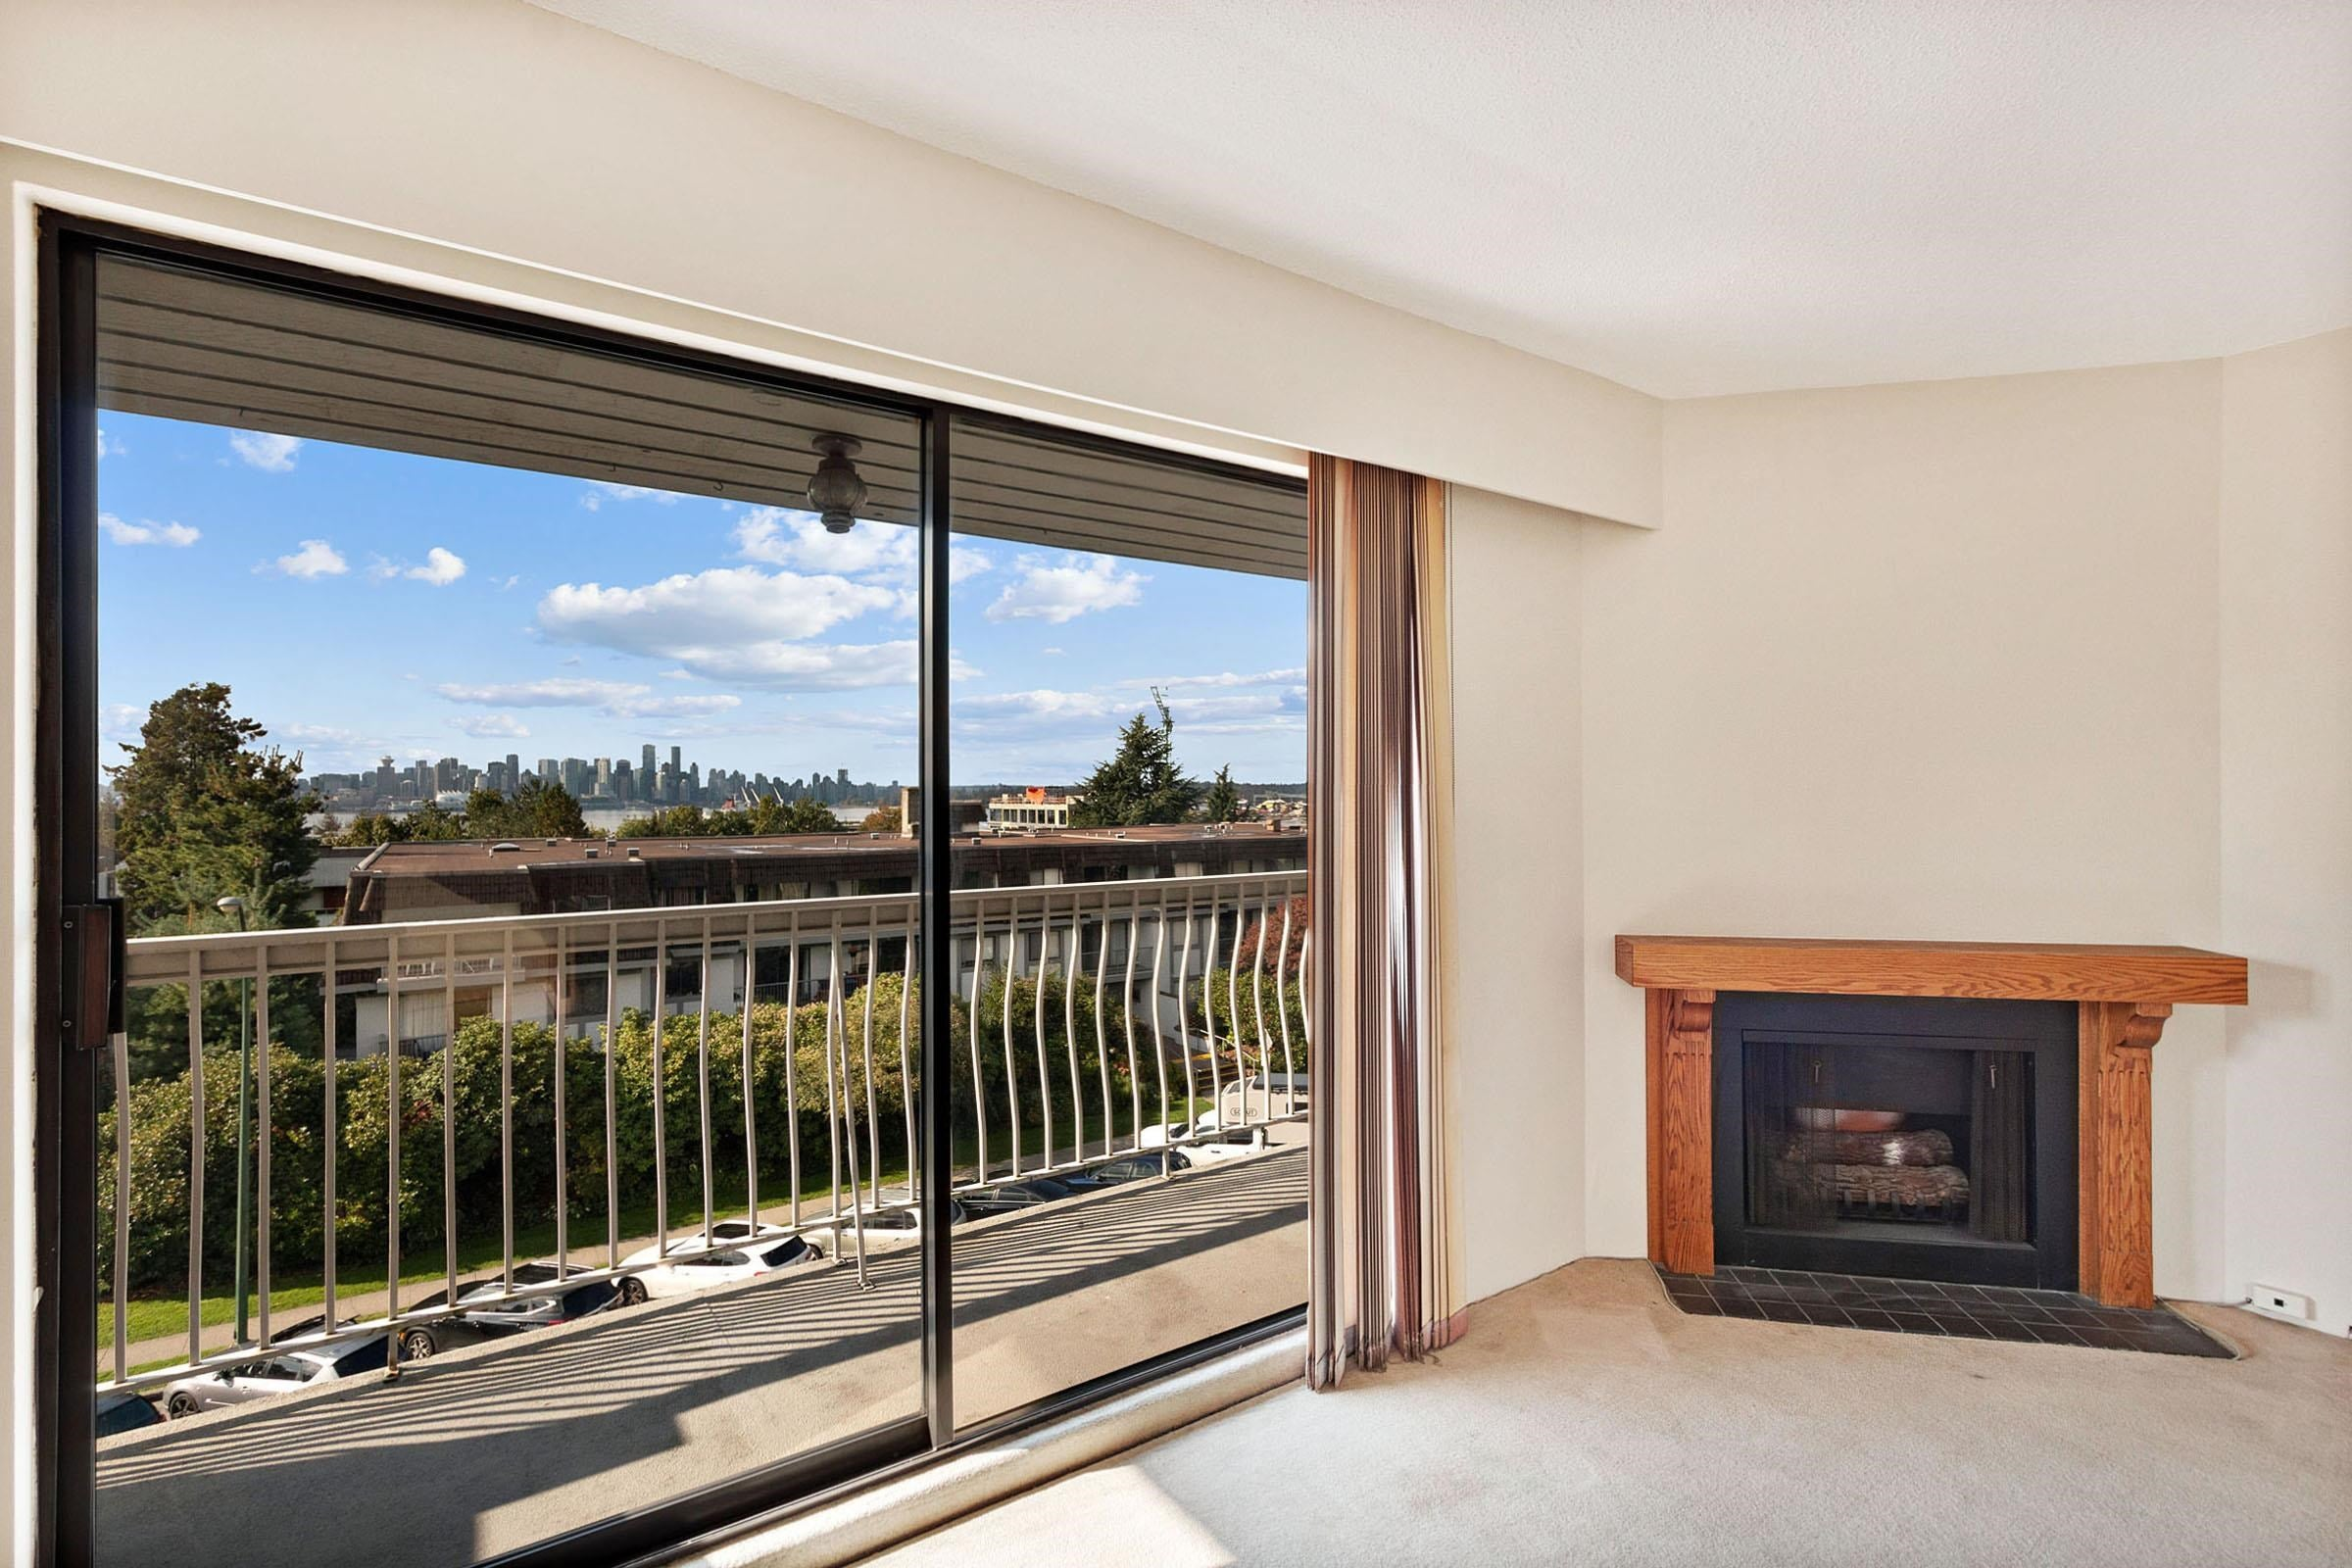 301 264 W 2ND STREET - Lower Lonsdale Apartment/Condo for sale, 2 Bedrooms (R2625527) - #6